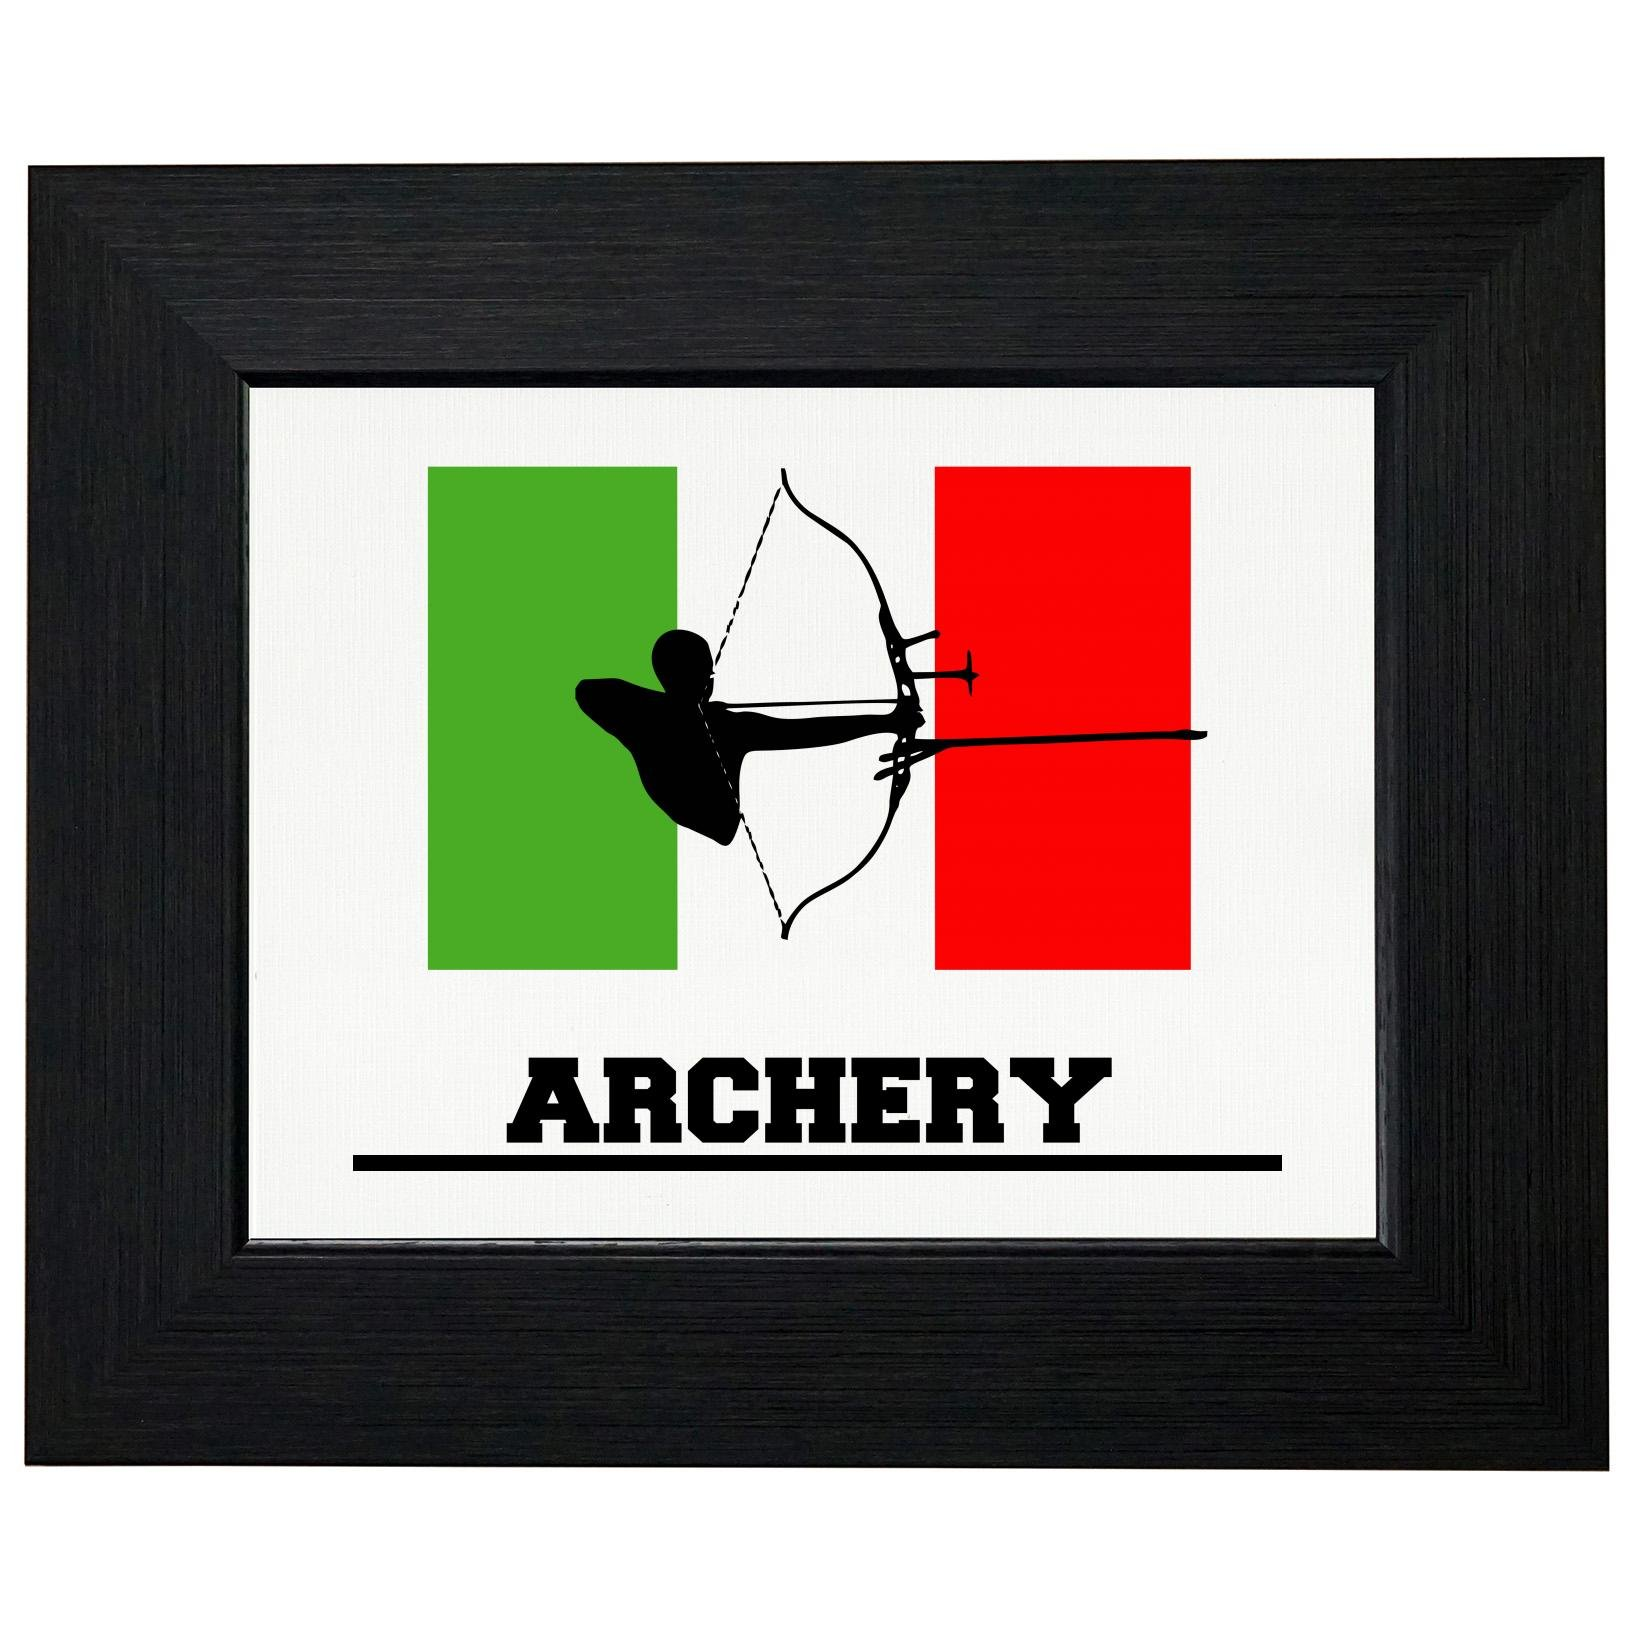 Italy Olympic - Archery - Flag - Silhouette Framed Print Poster Wall or Desk Mount Options